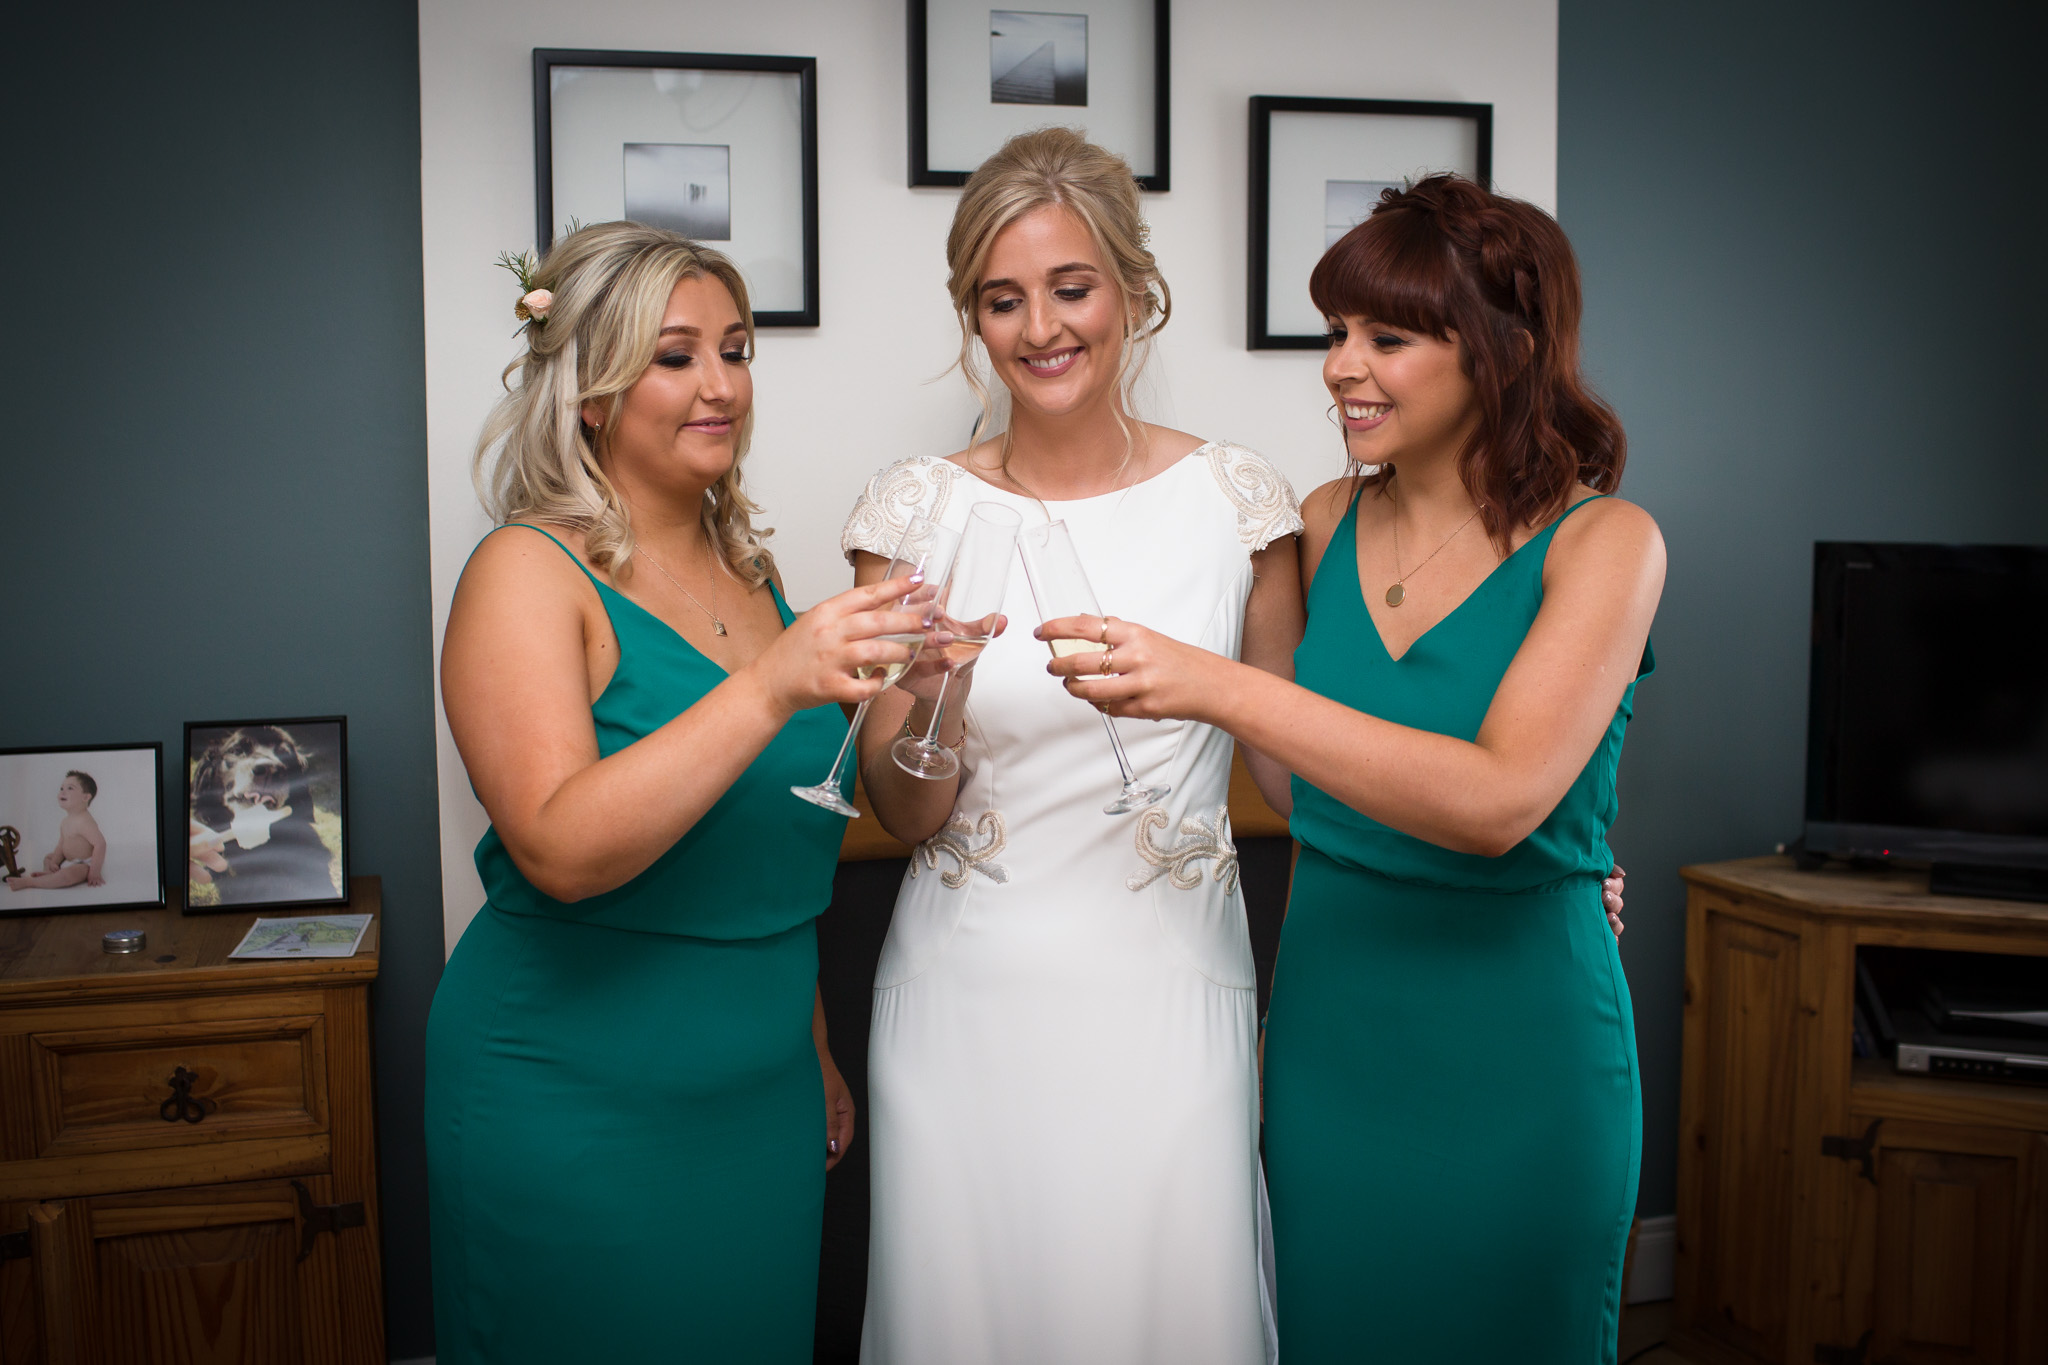 Mark_Barnes_Northern_Ireland_Wedding_Photography_Ballyscullion_Park_Wedding_Photography_Stef&Bobby-13.jpg